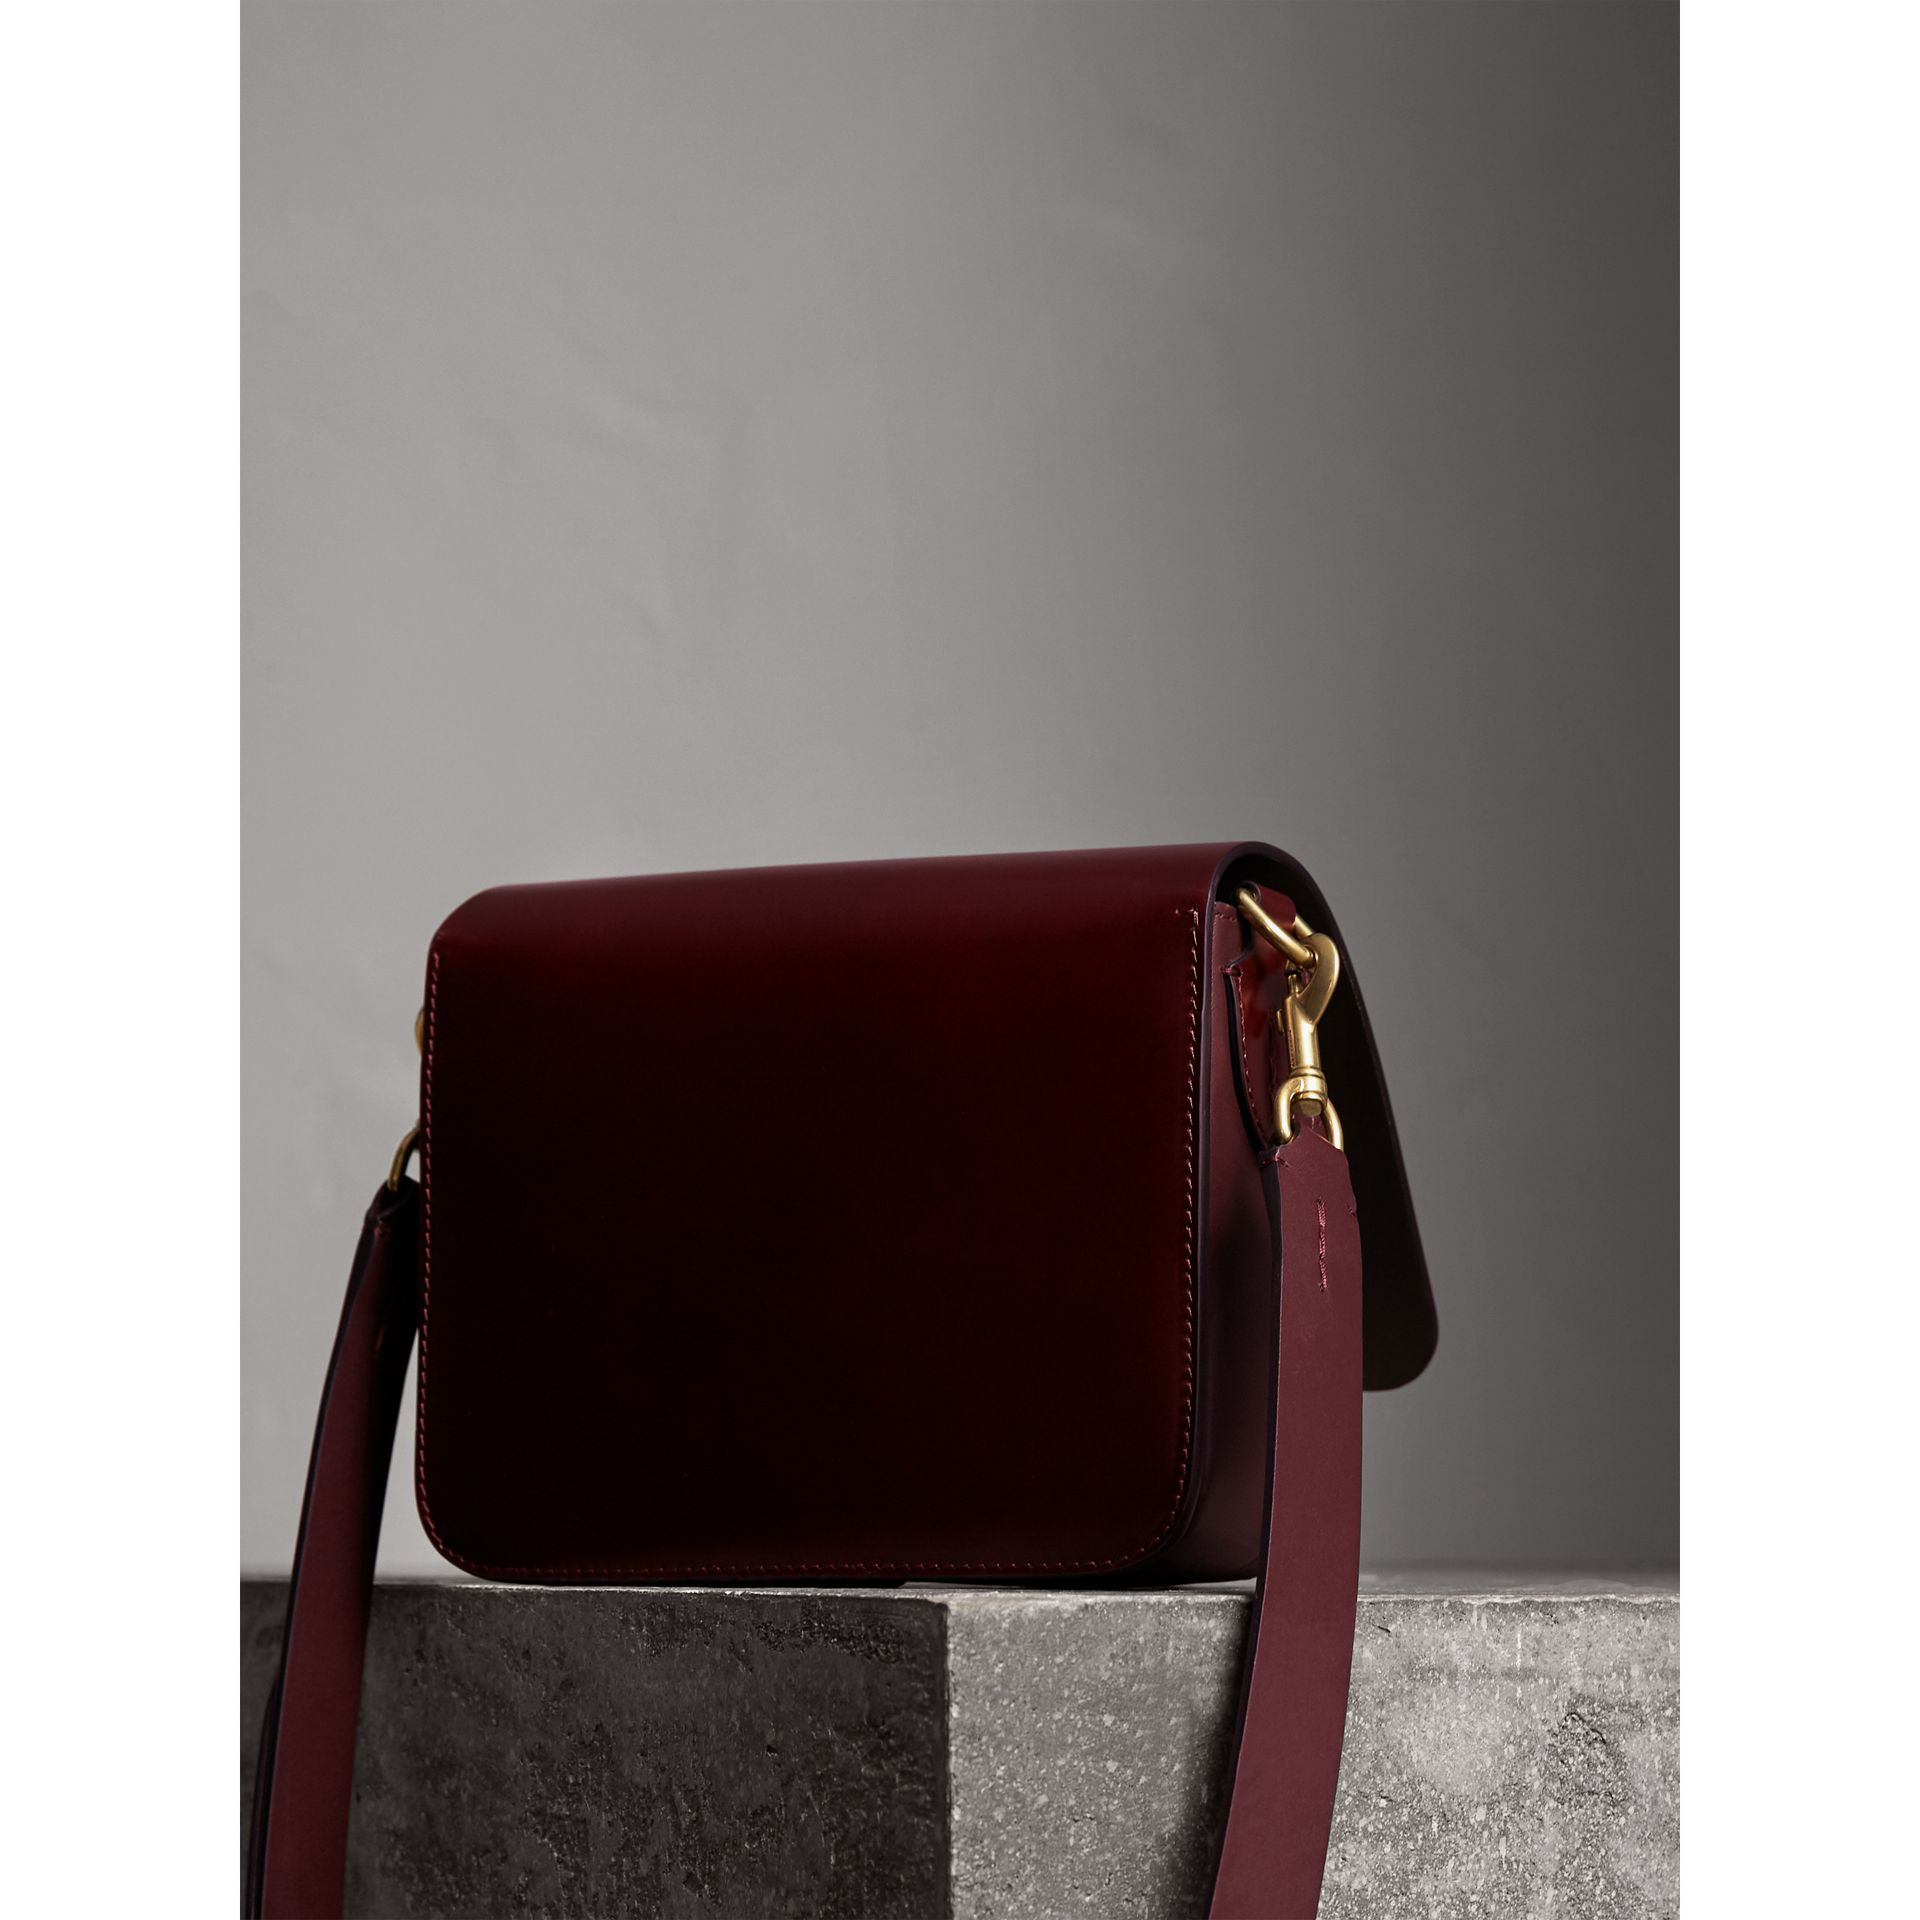 The Square Satchel in Bridle Leather in Deep Claret - Women | Burberry Canada - gallery image 3